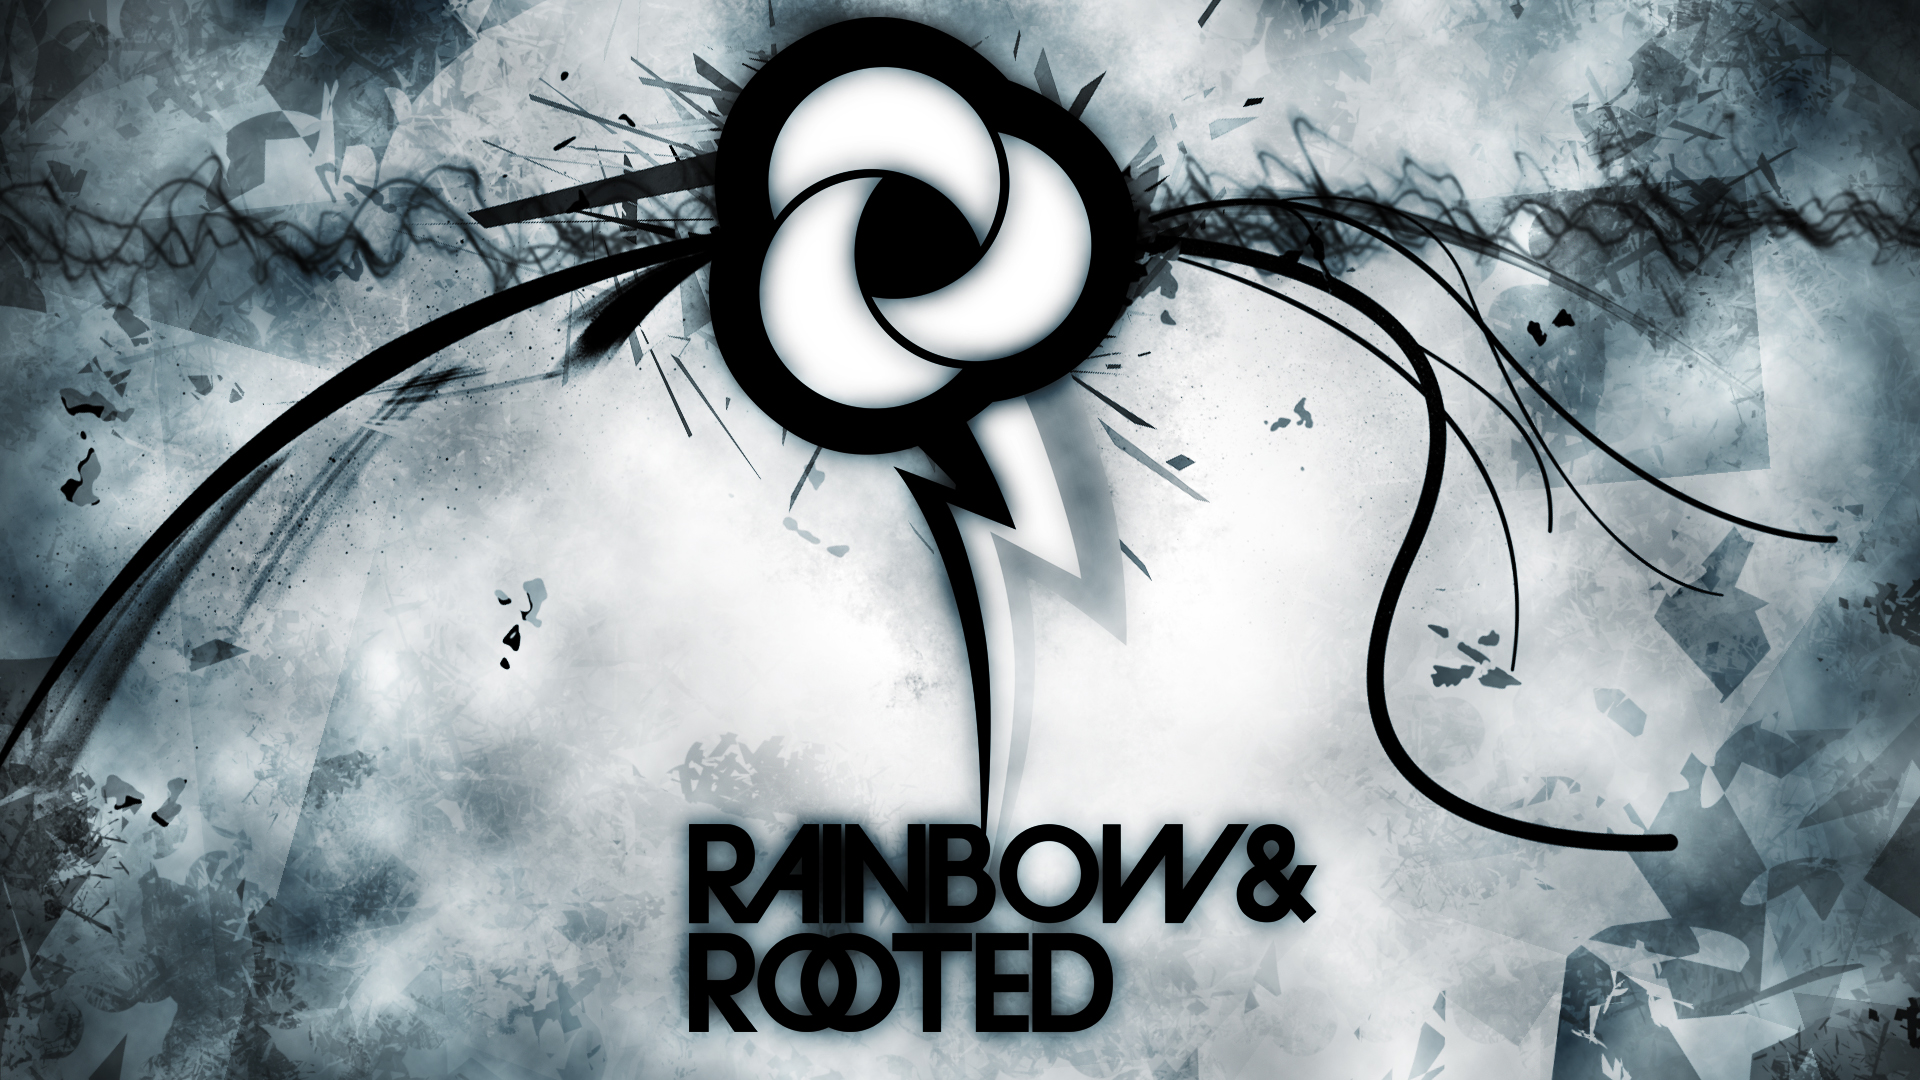 Rainbow N' Rooted by Karl97 and WMill